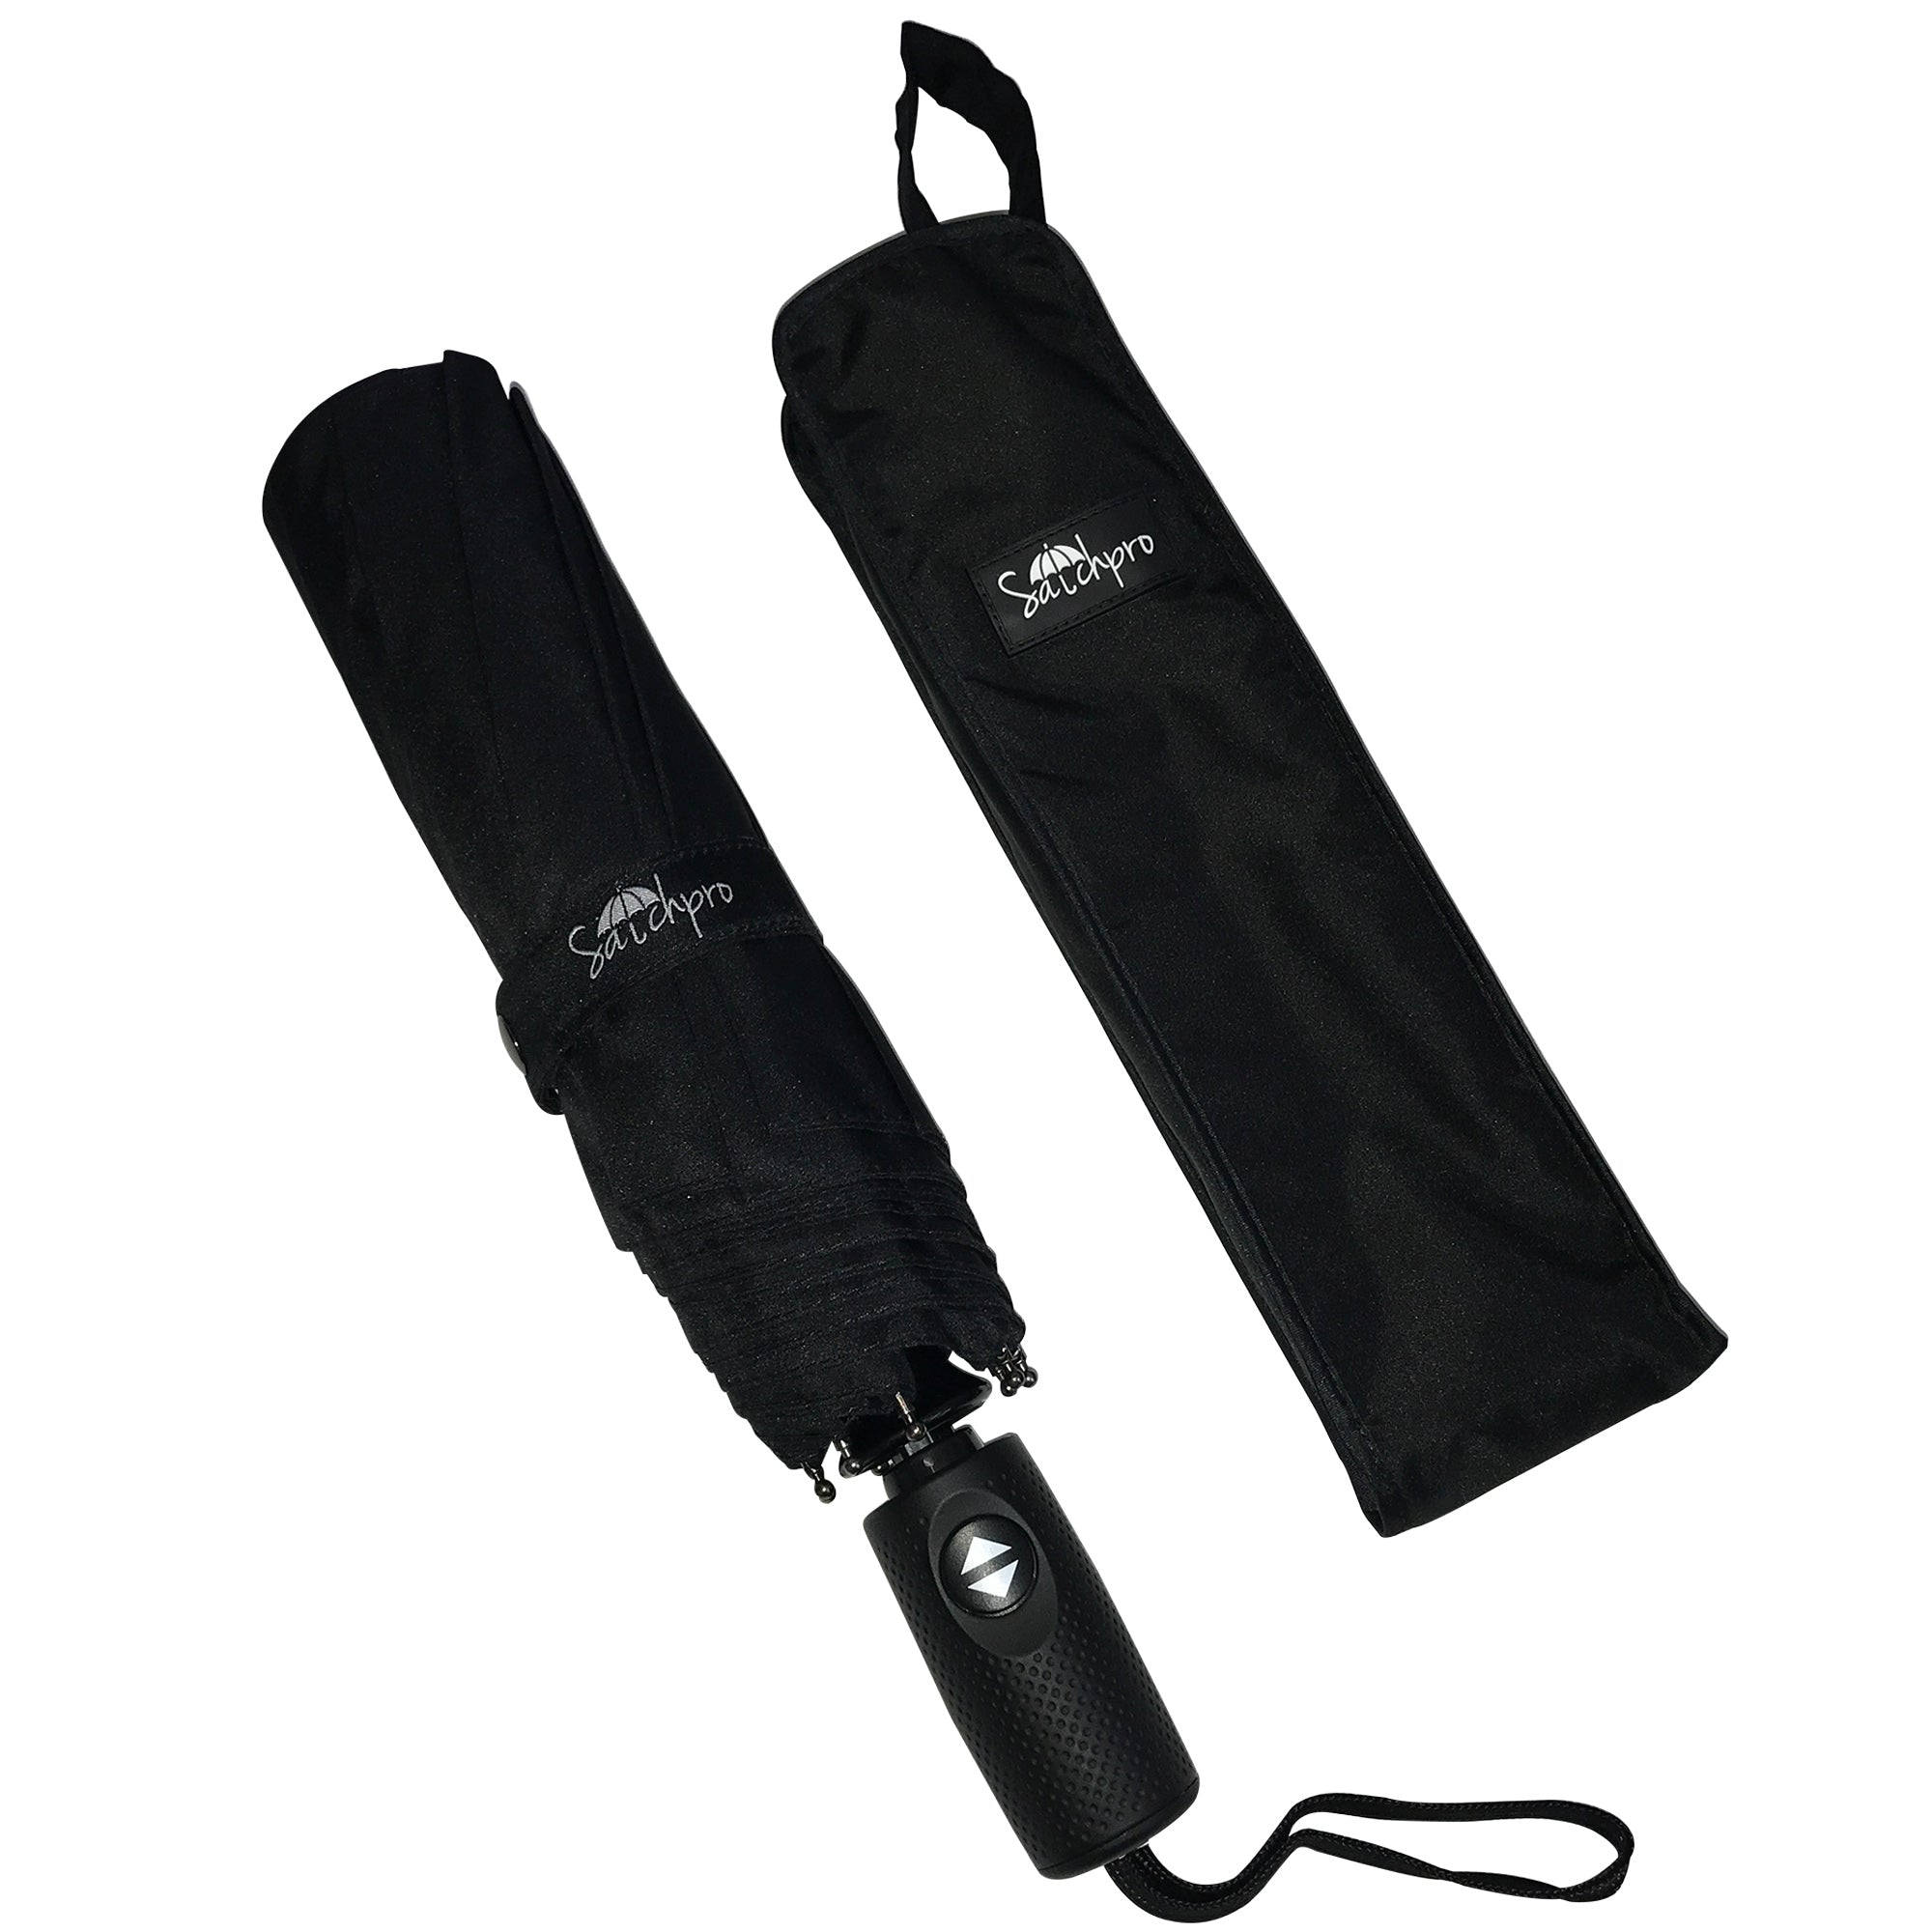 Teflon Coated Travel Umbrella